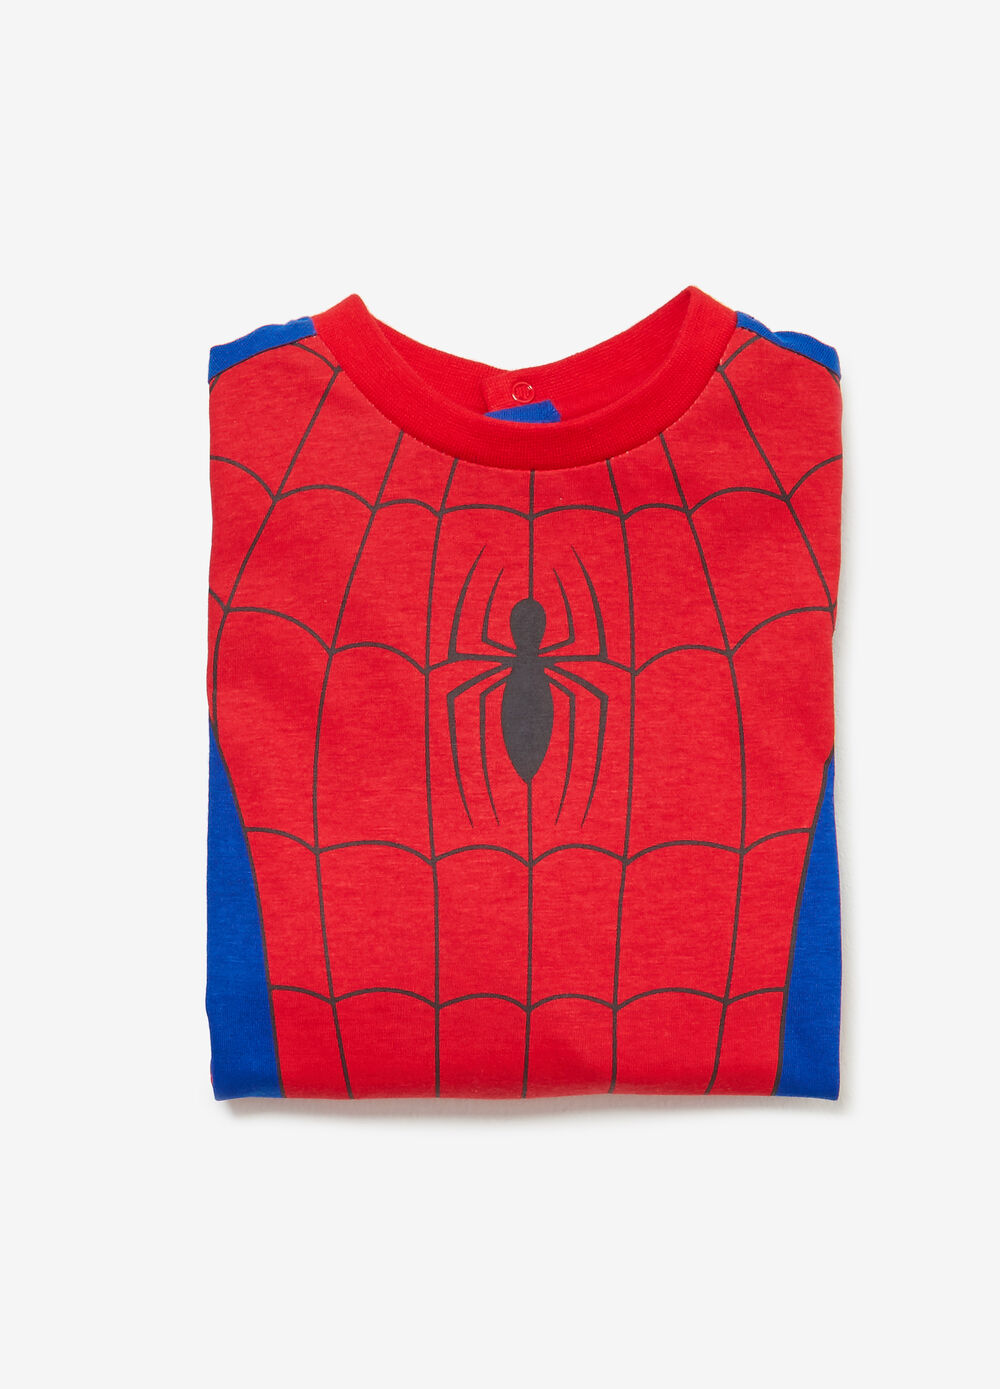 Two-tone Spiderman sleepsuit